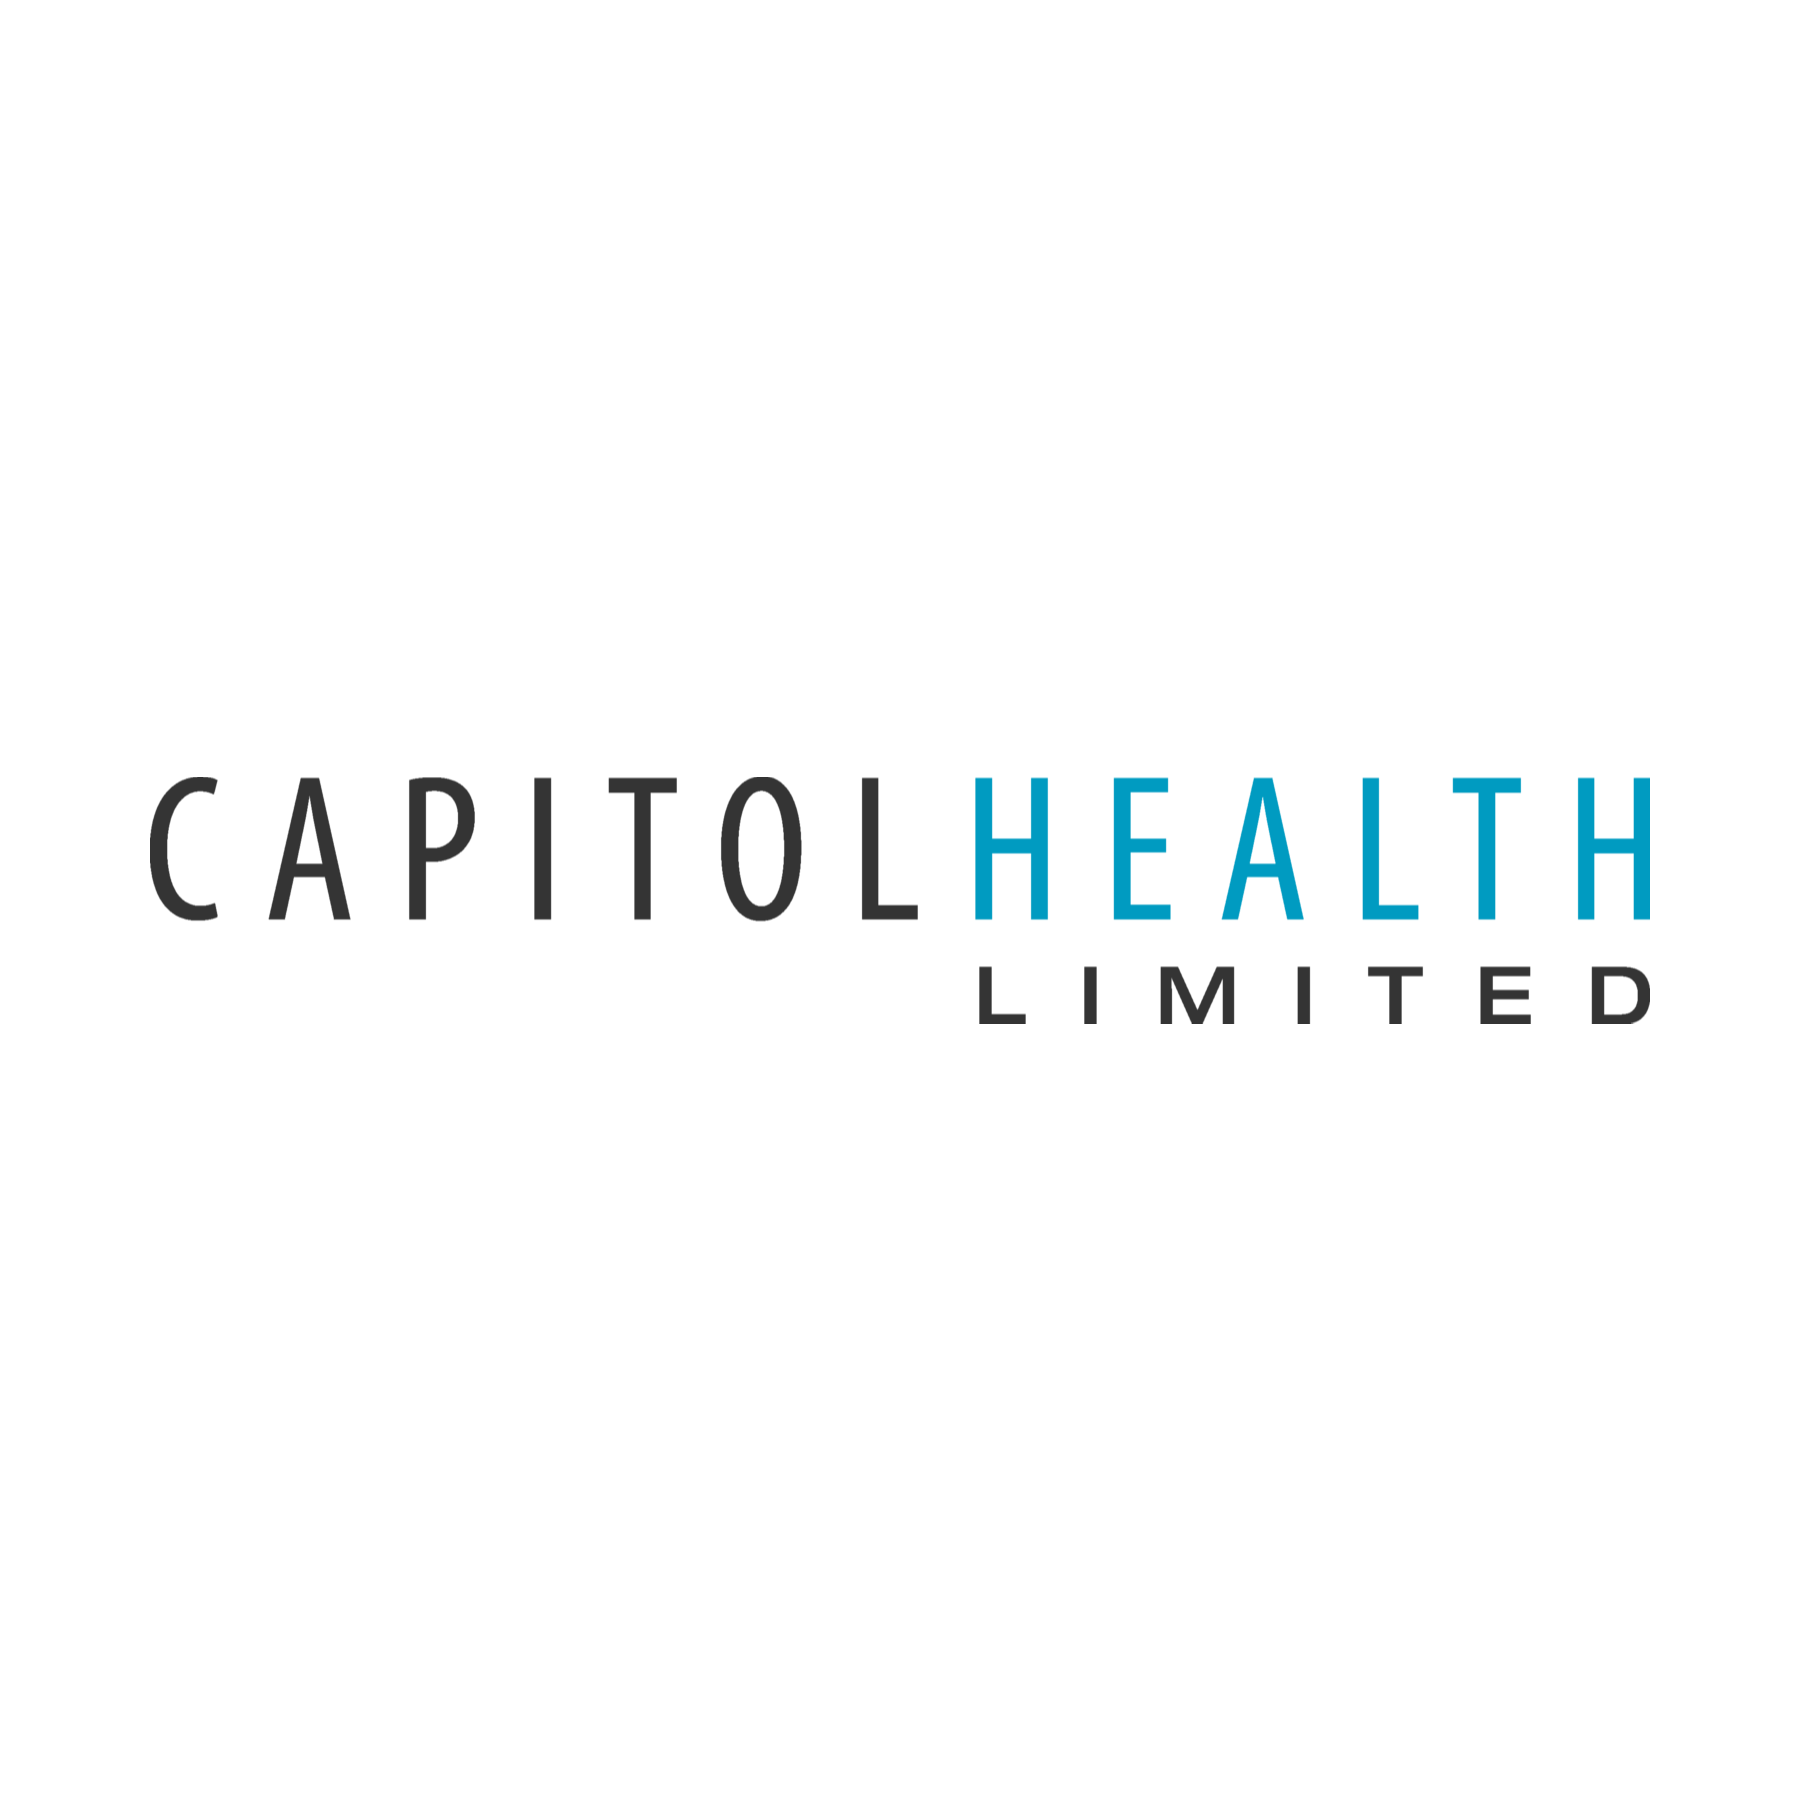 CAPITOL HEALTH LIMITED